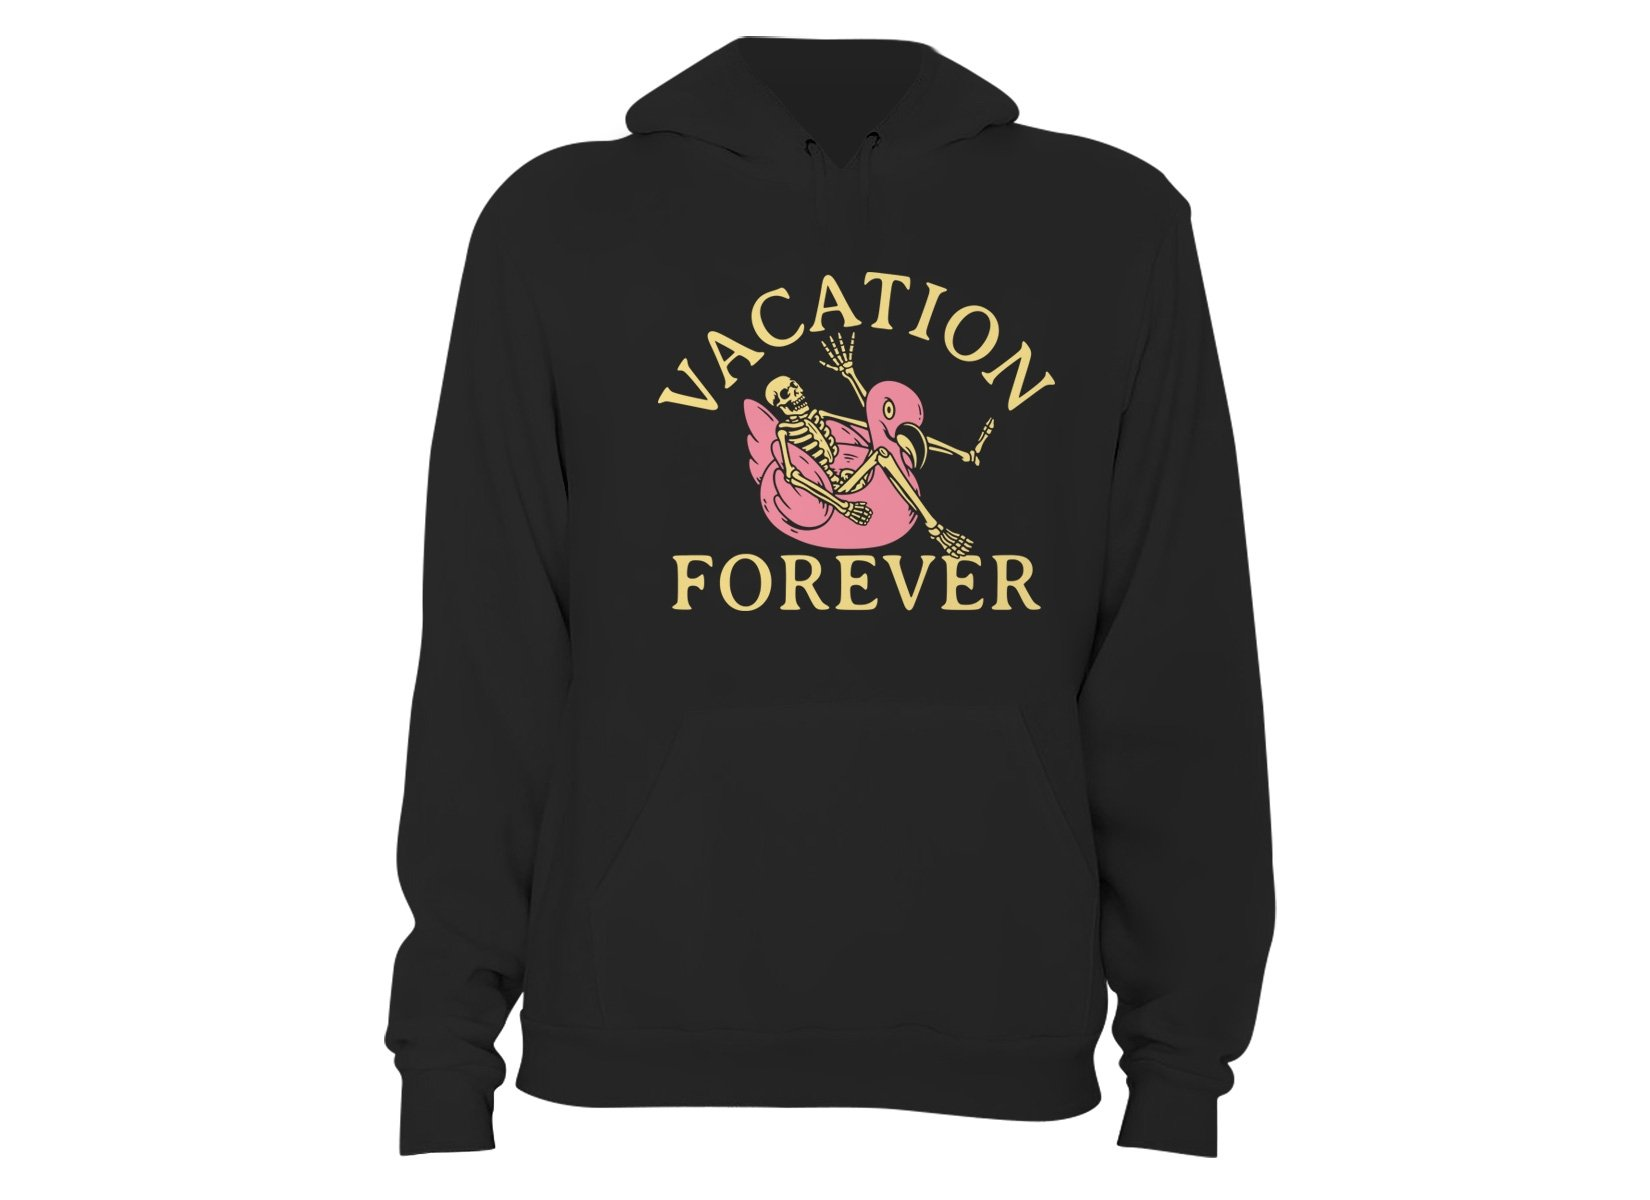 Vacation Forever on Hoodie